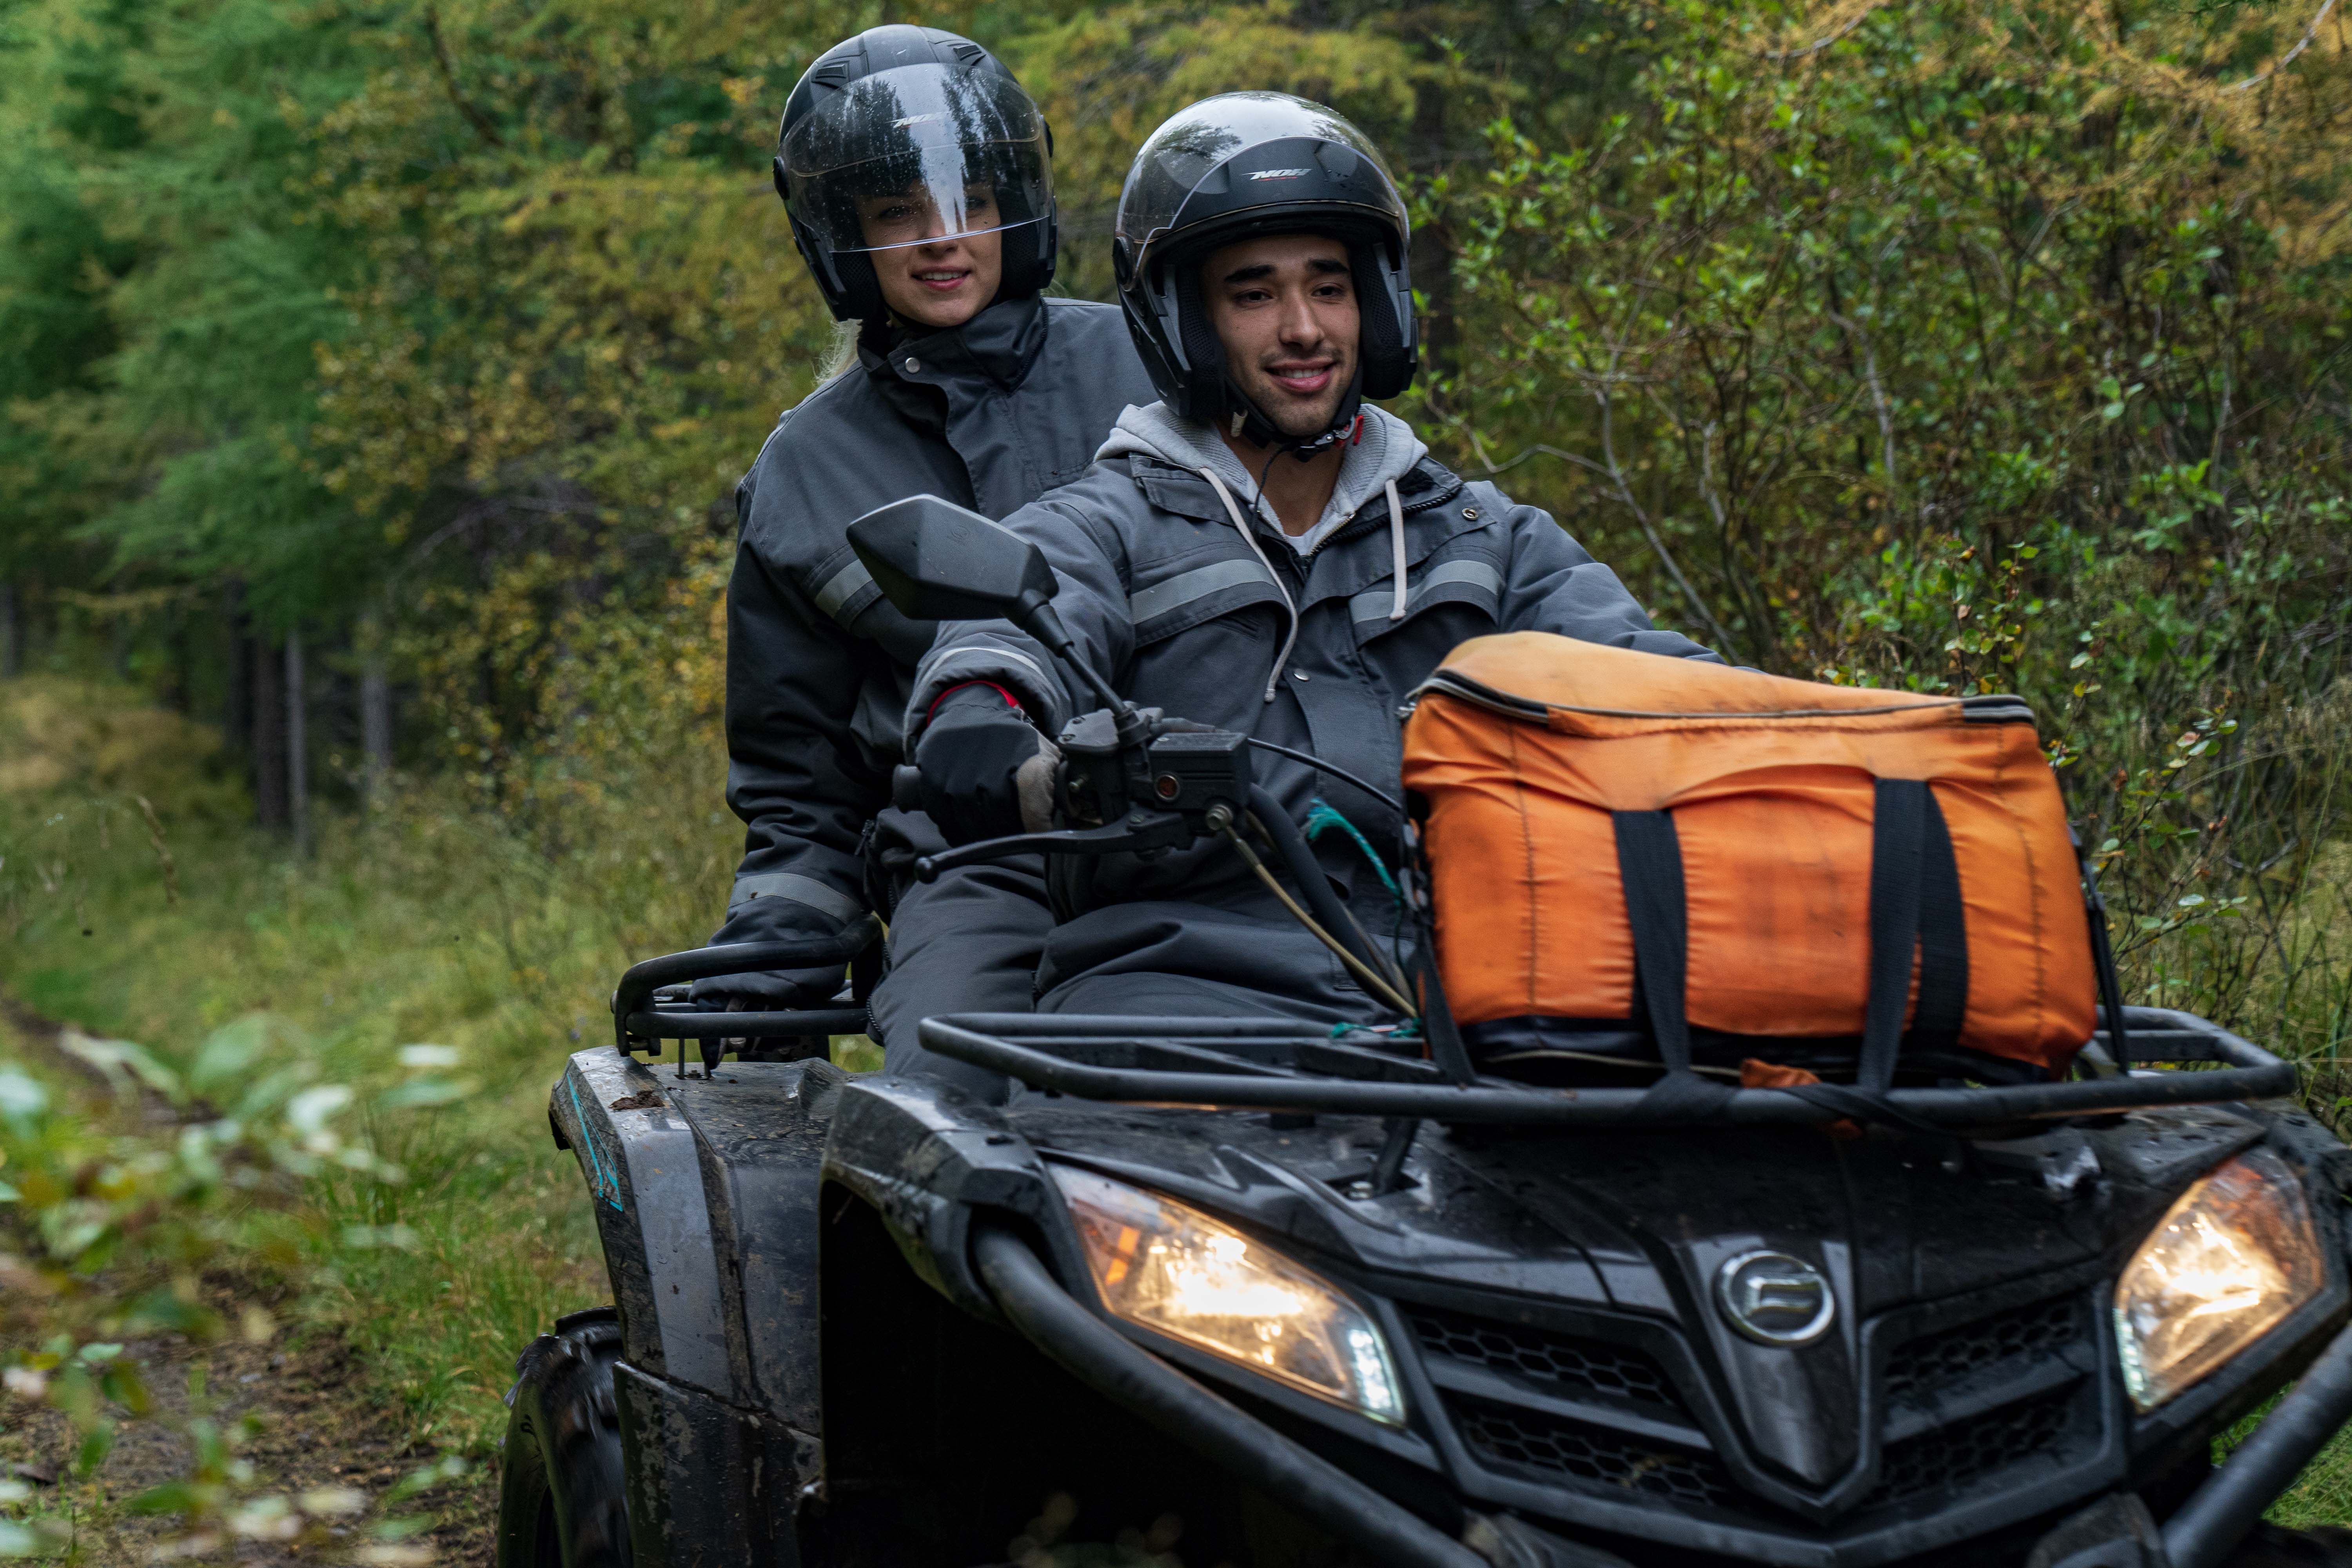 Two people on an ATV in Iceland